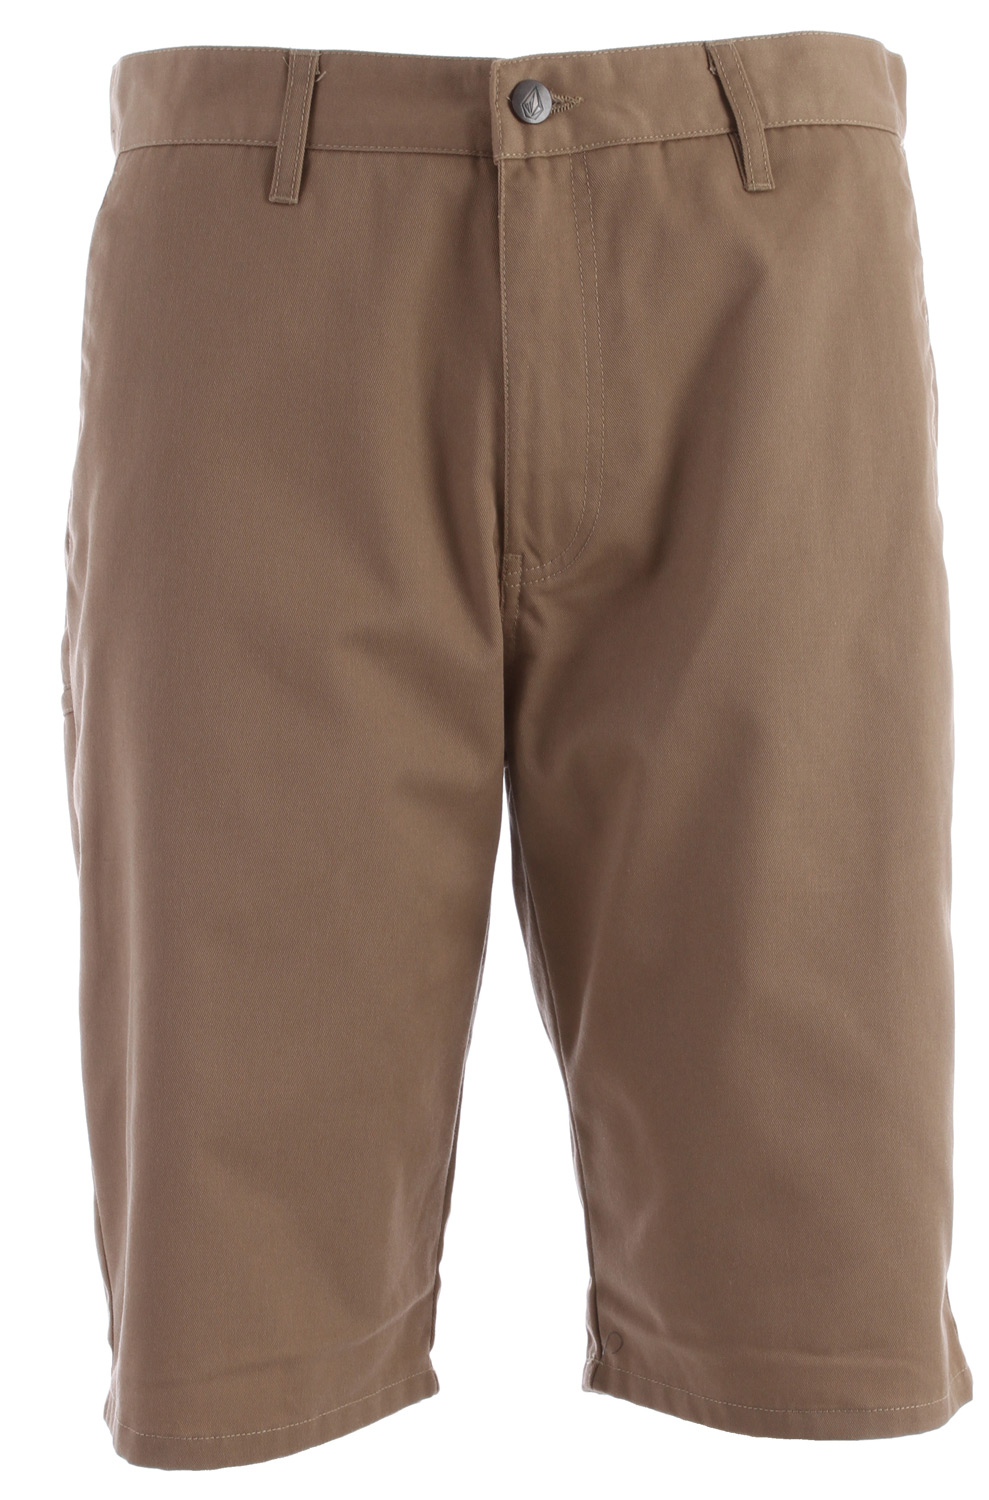 "Surf Key Features of the Volcom Frickin Modern Shorts: 22"" Outseam Relaxed fit chino short Pre laundered Rigid twill 65% Polyester / 35% Cotton twill - $45.00"